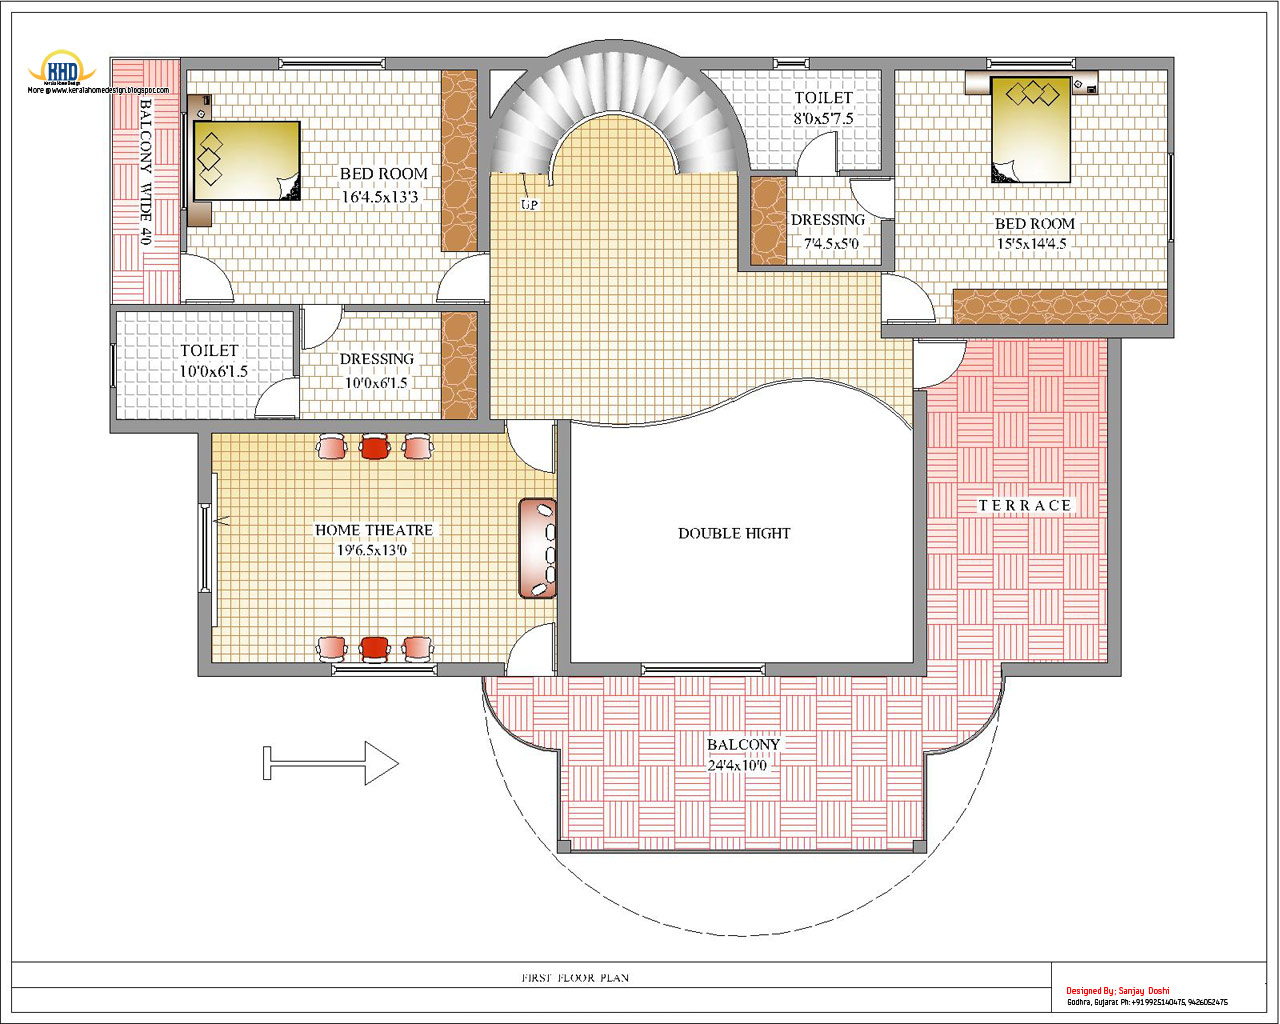 Duplex house plan and elevation 4217 sq ft home appliance House drawing plan layout